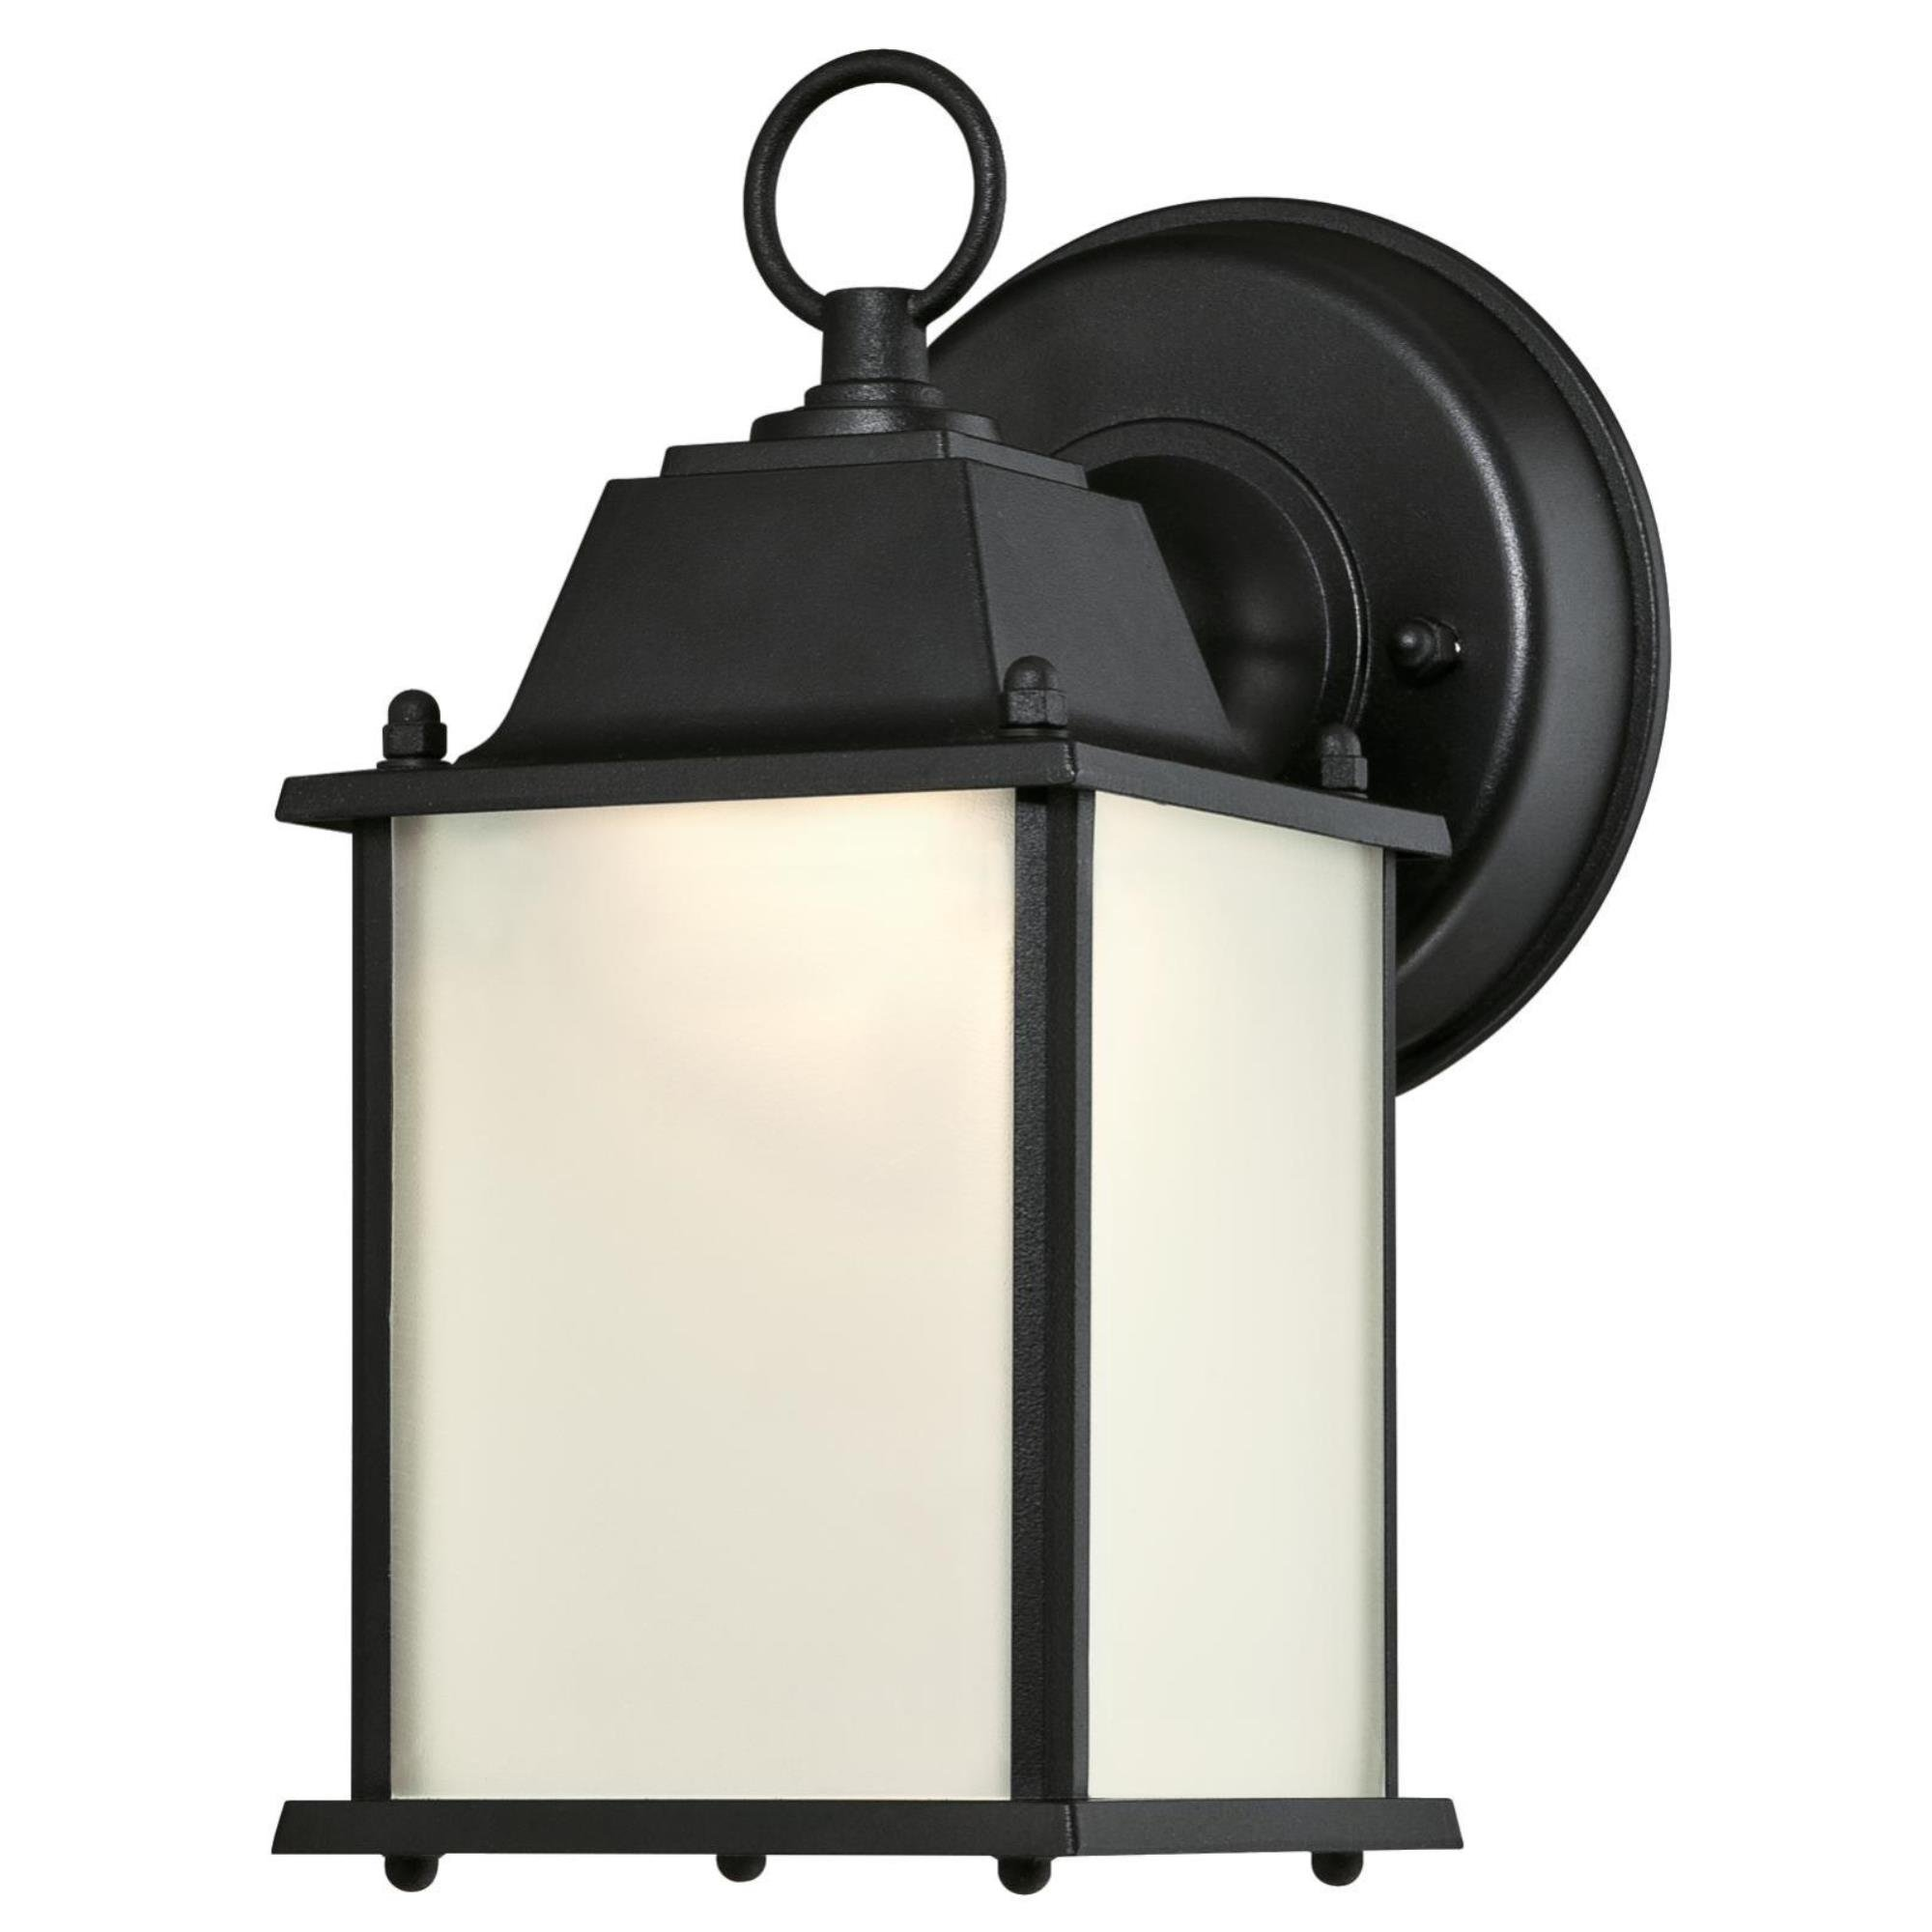 Westinghouse 6107500 One-Light Energy Star LED Outdoor Wall Fixture, Textured Black Finish with Frosted Glass